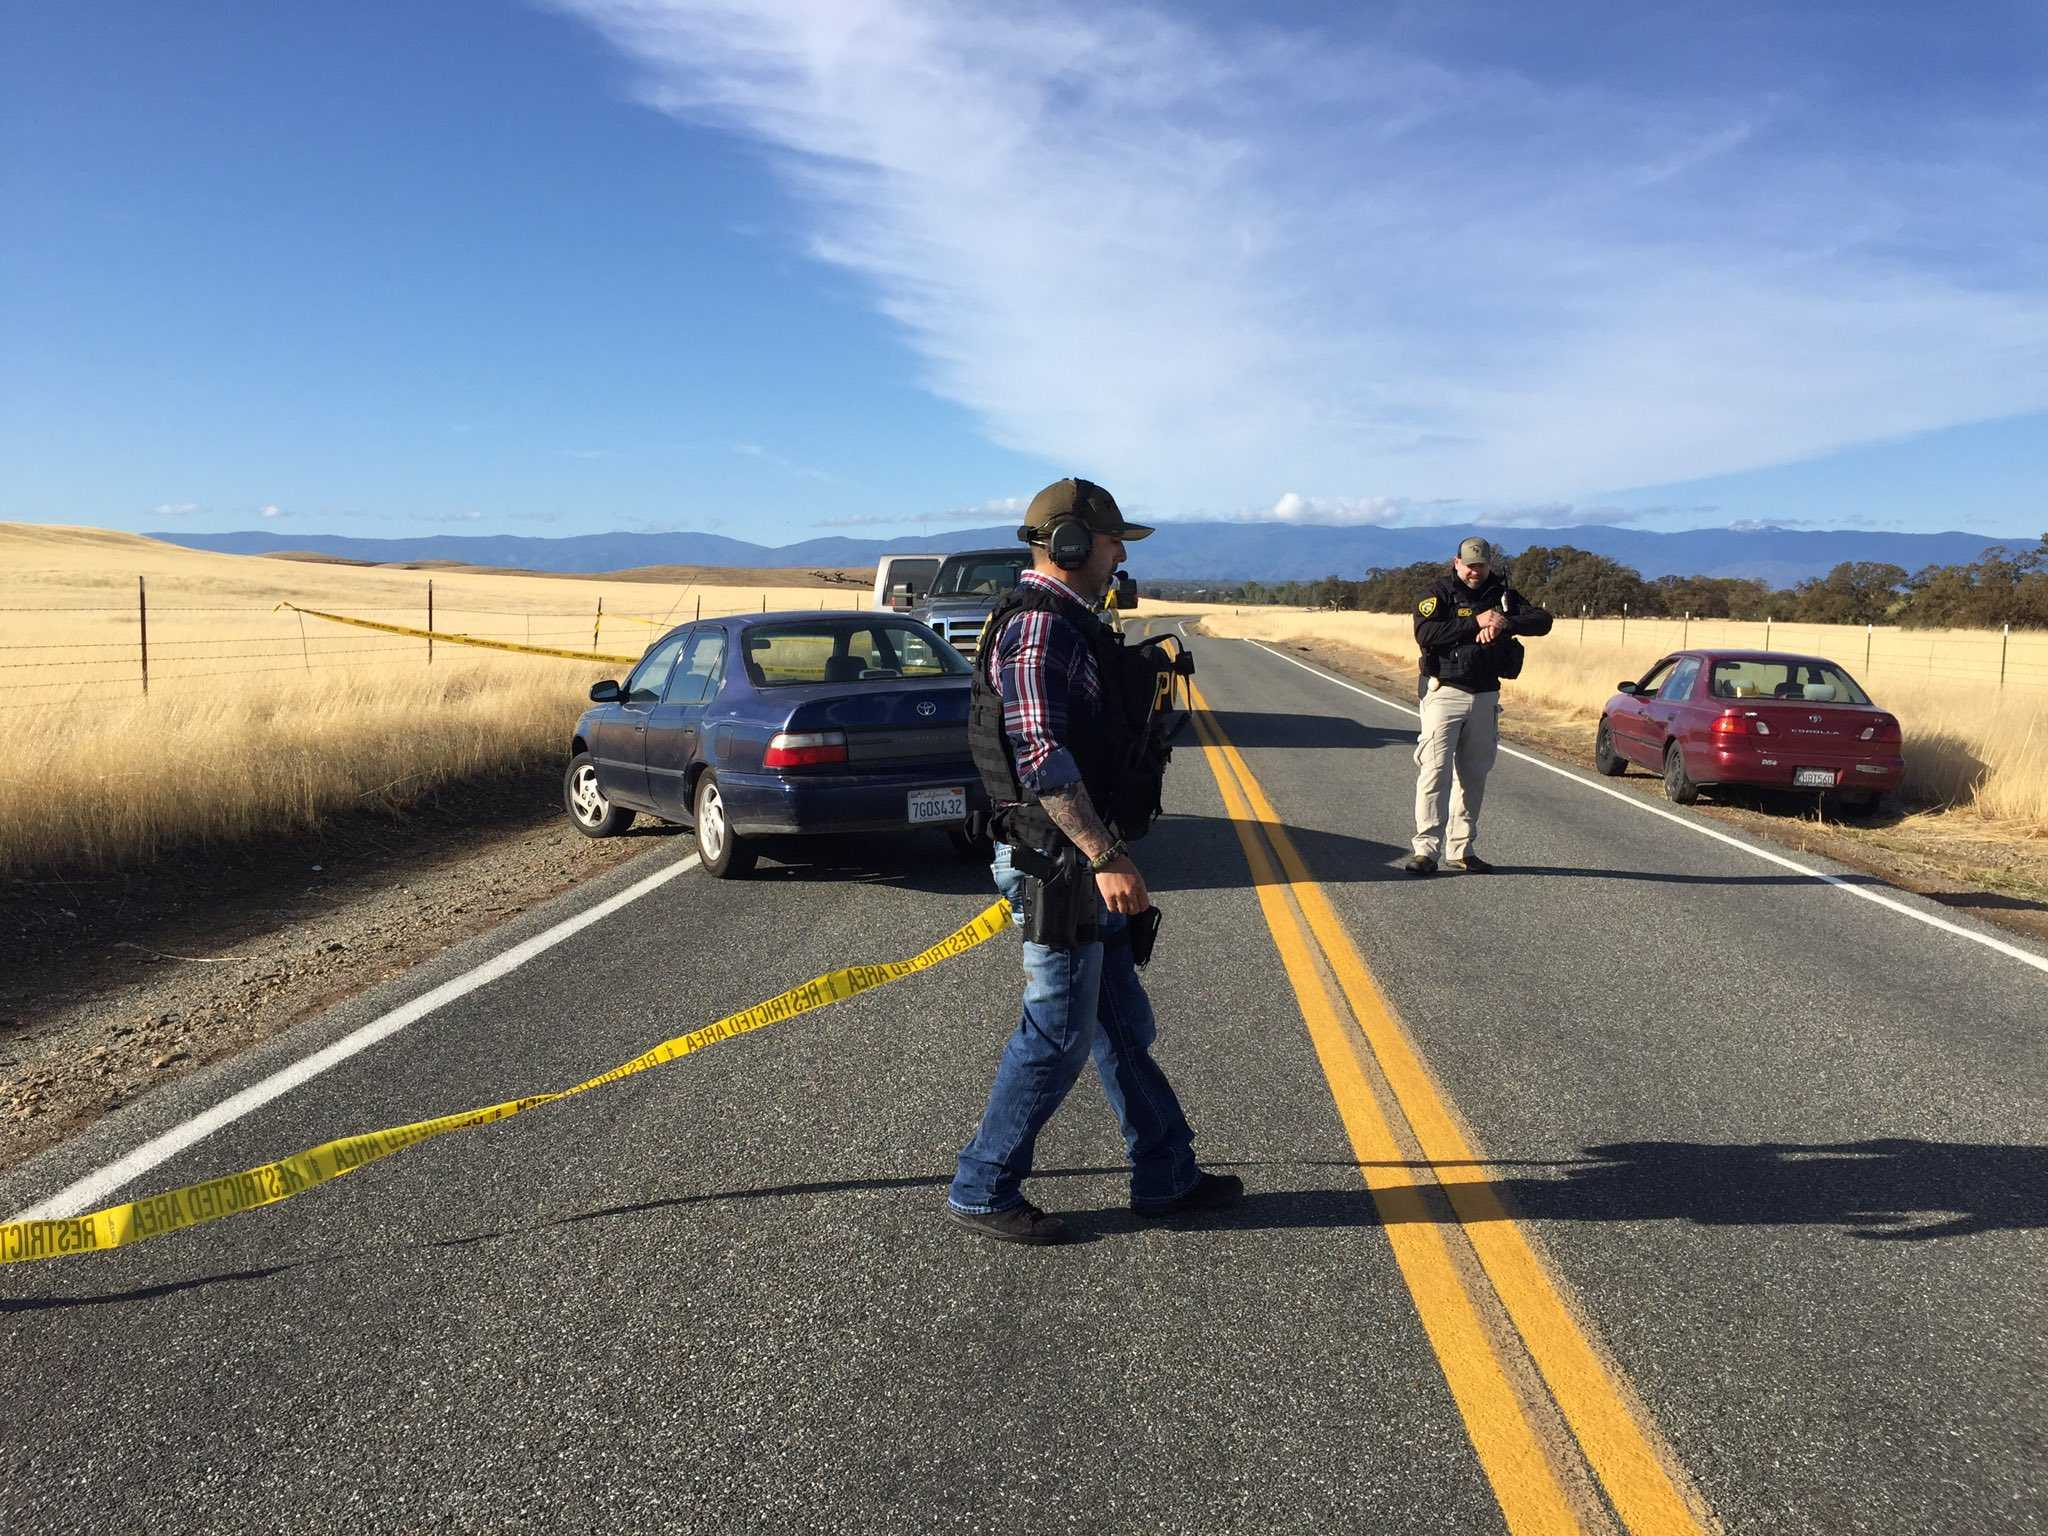 Five dead following shootings in rural California